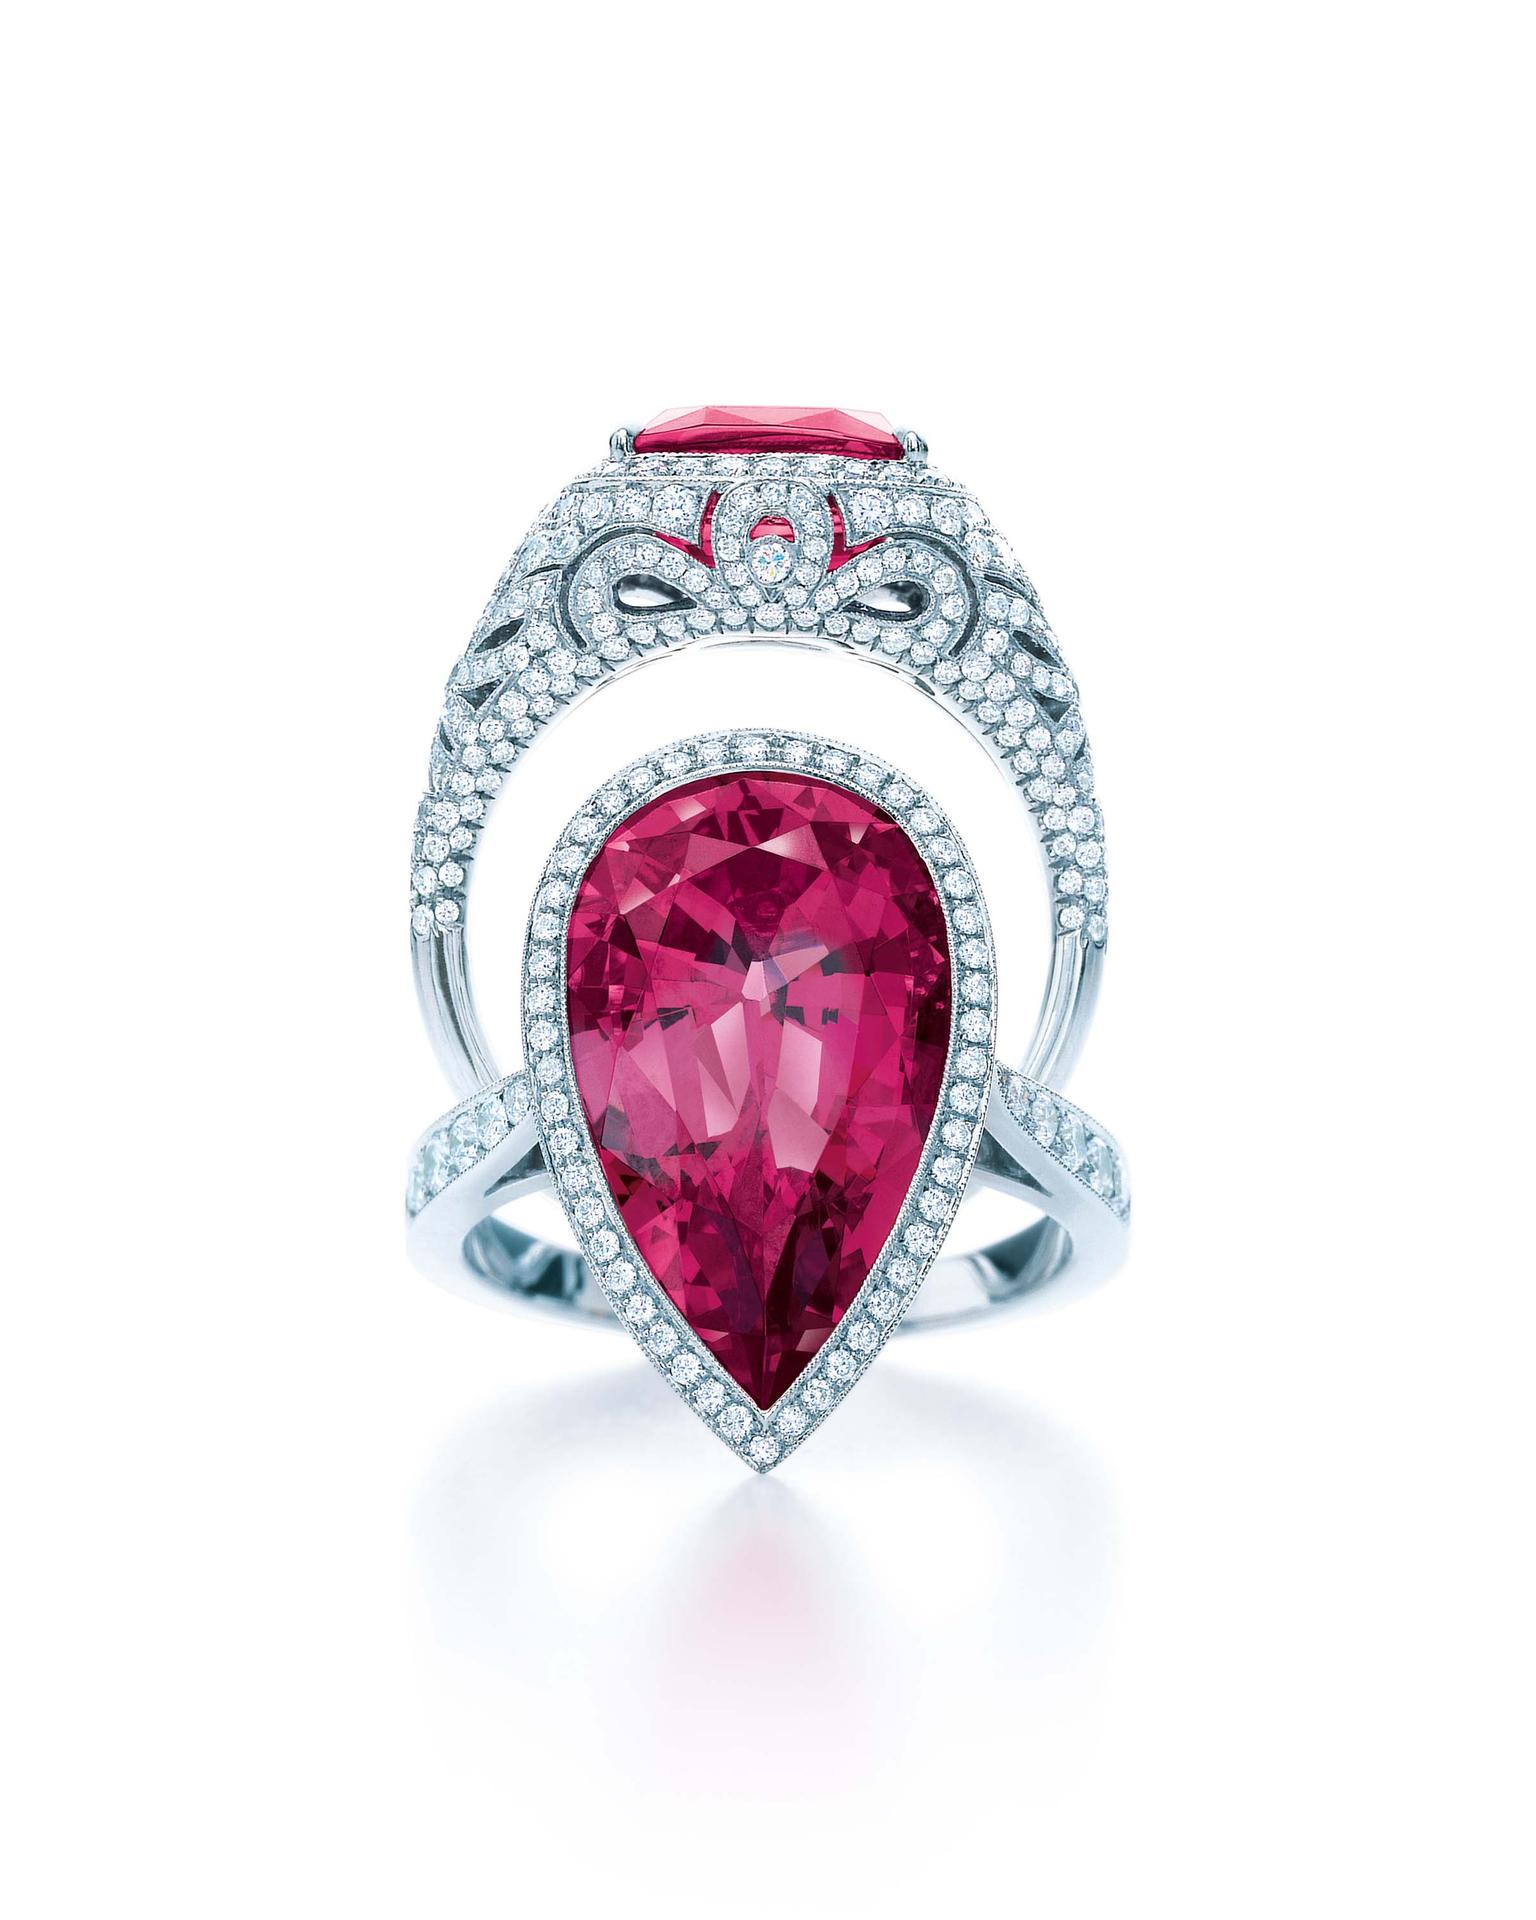 Tiffany & Co. Blue Book Collection red spinel ring, bottom, with diamonds set in platinum pictured with the Tiffany & Co. Blue Book Collection pink sapphire ring (top) with diamonds in platinum